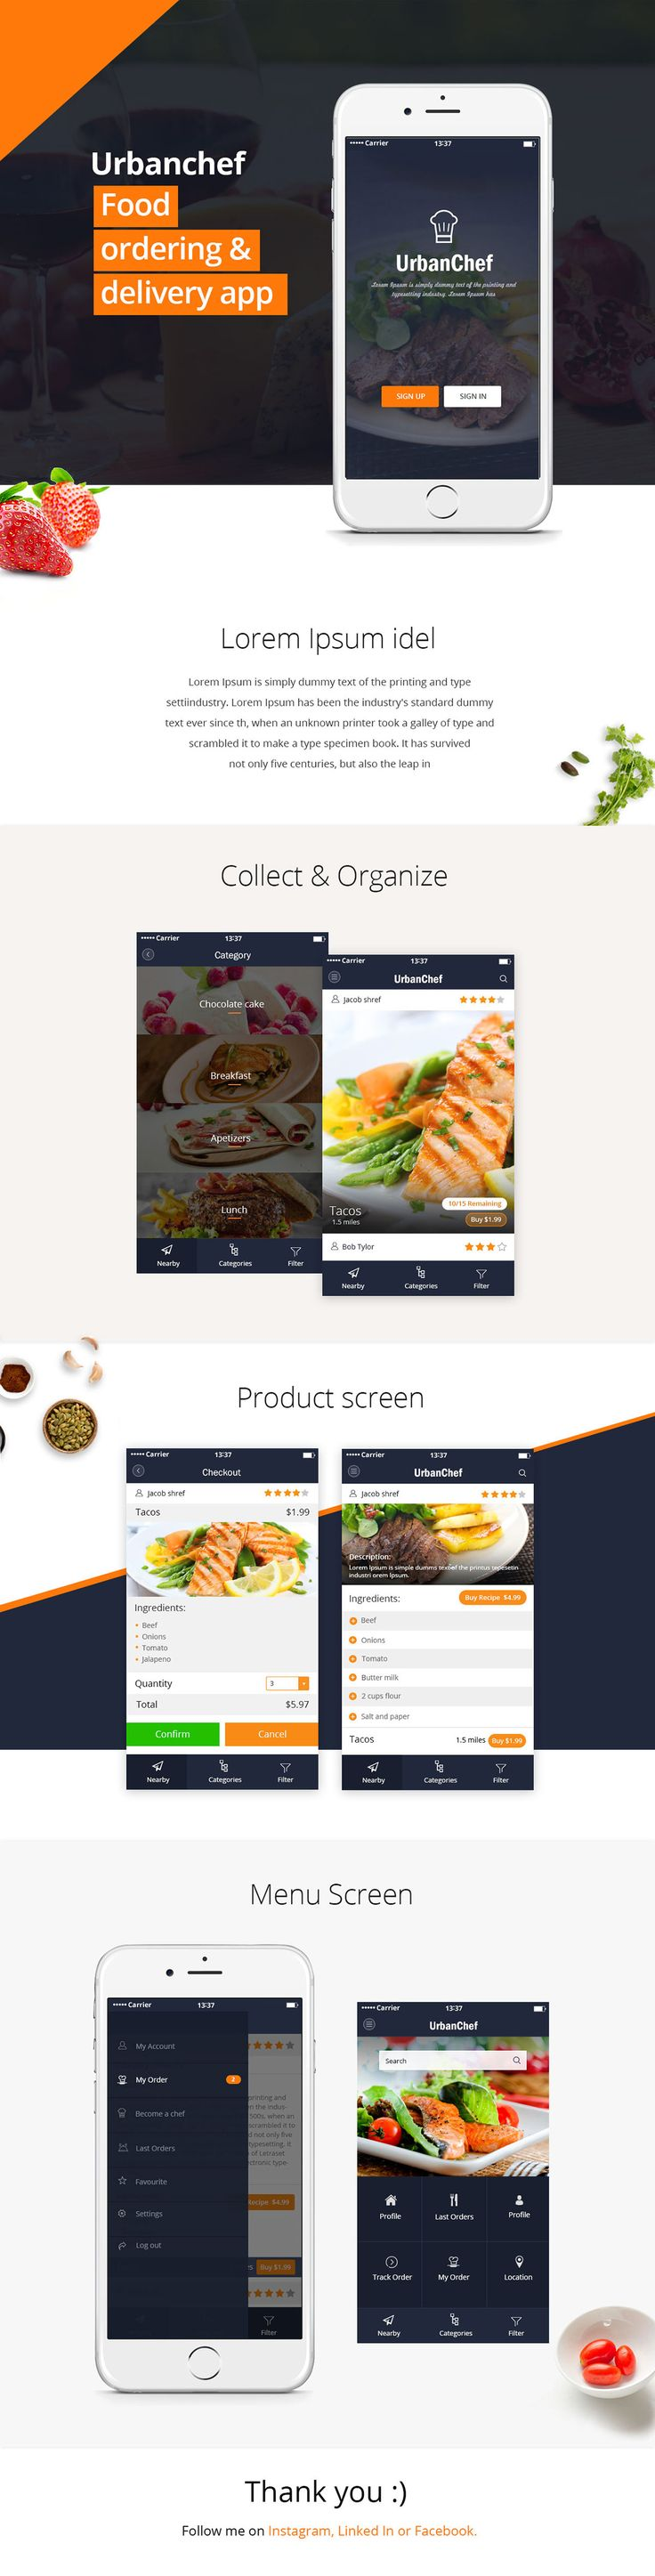 Food ordering & delivery app on Behance